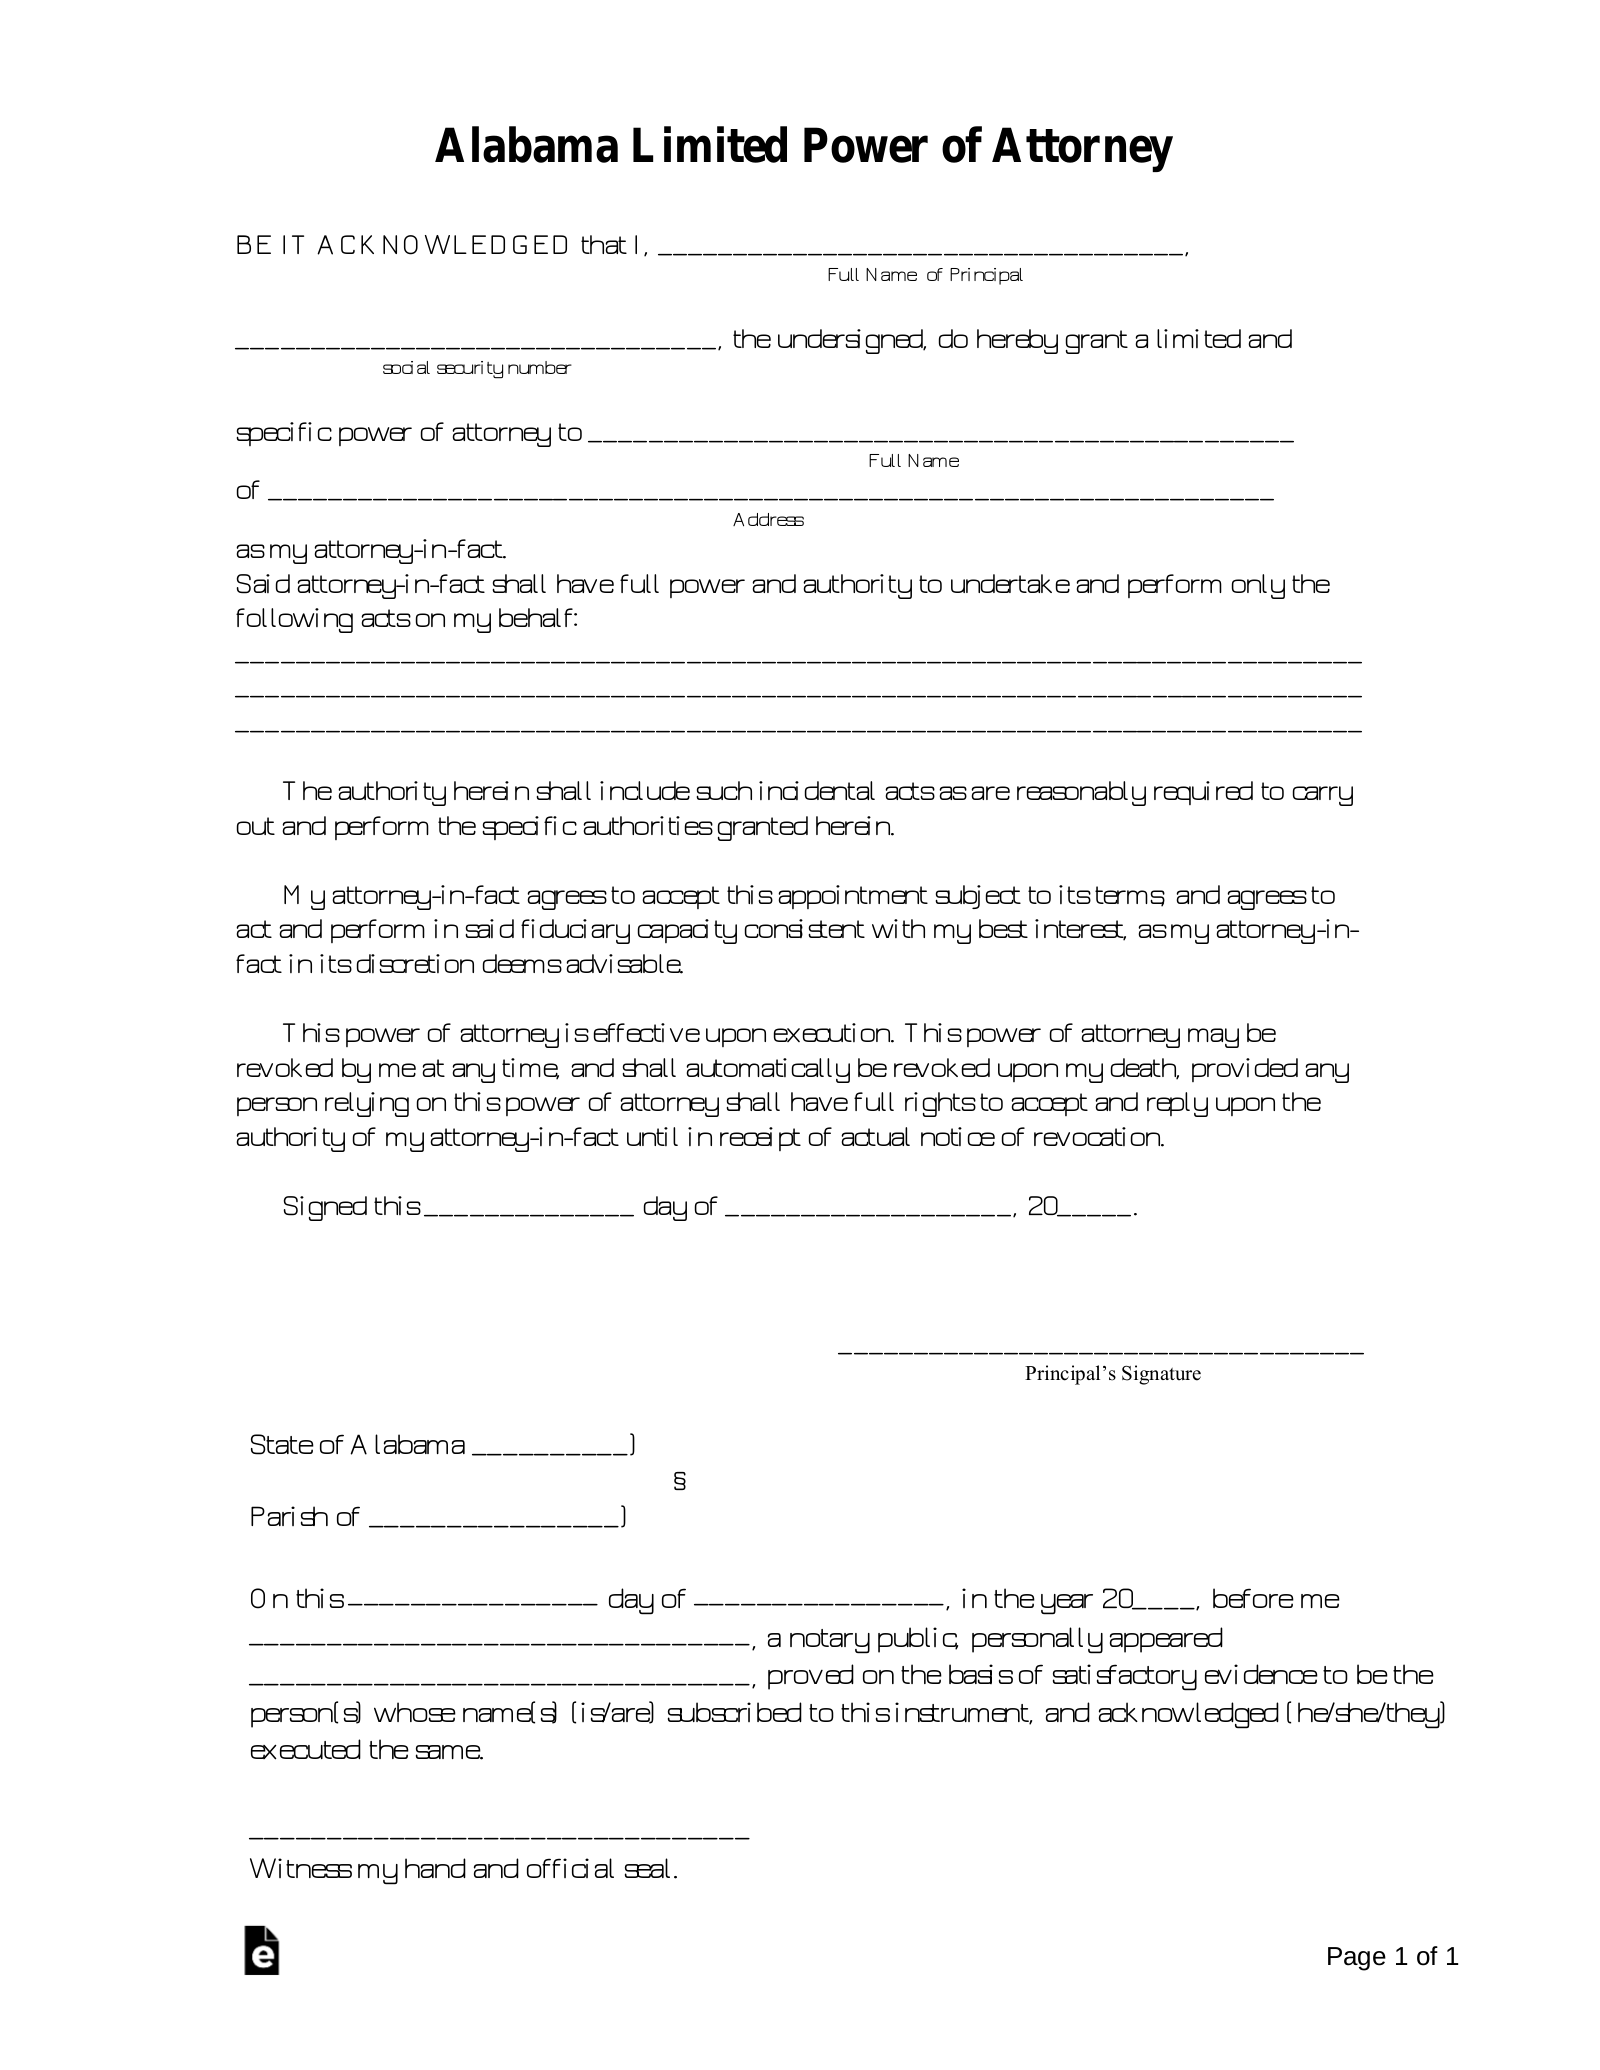 Free Alabama Limited Power of Attorney Form - PDF   Word ... on easement form alabama, quit claim deed form alabama, printable medical power attorney forms alabama, bill of sale form alabama, name change form alabama, power of attorney document, power of attorney print out,